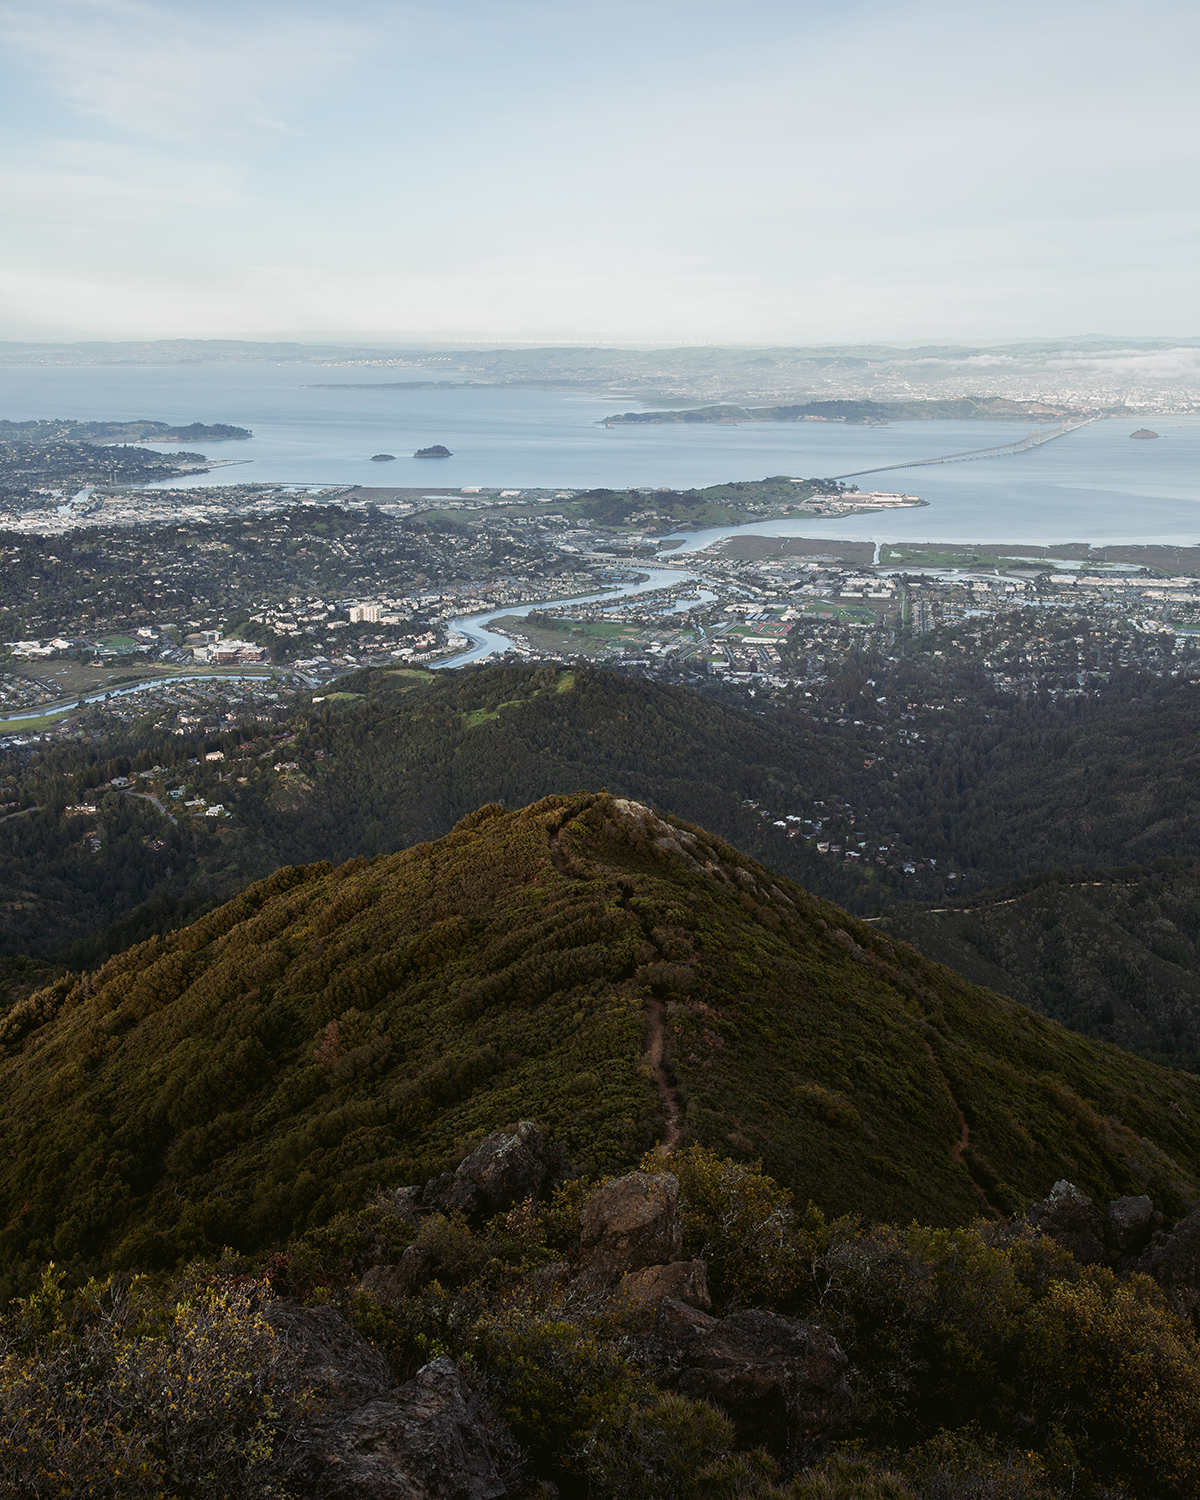 MT TAM - Some shots from up on MT Tam